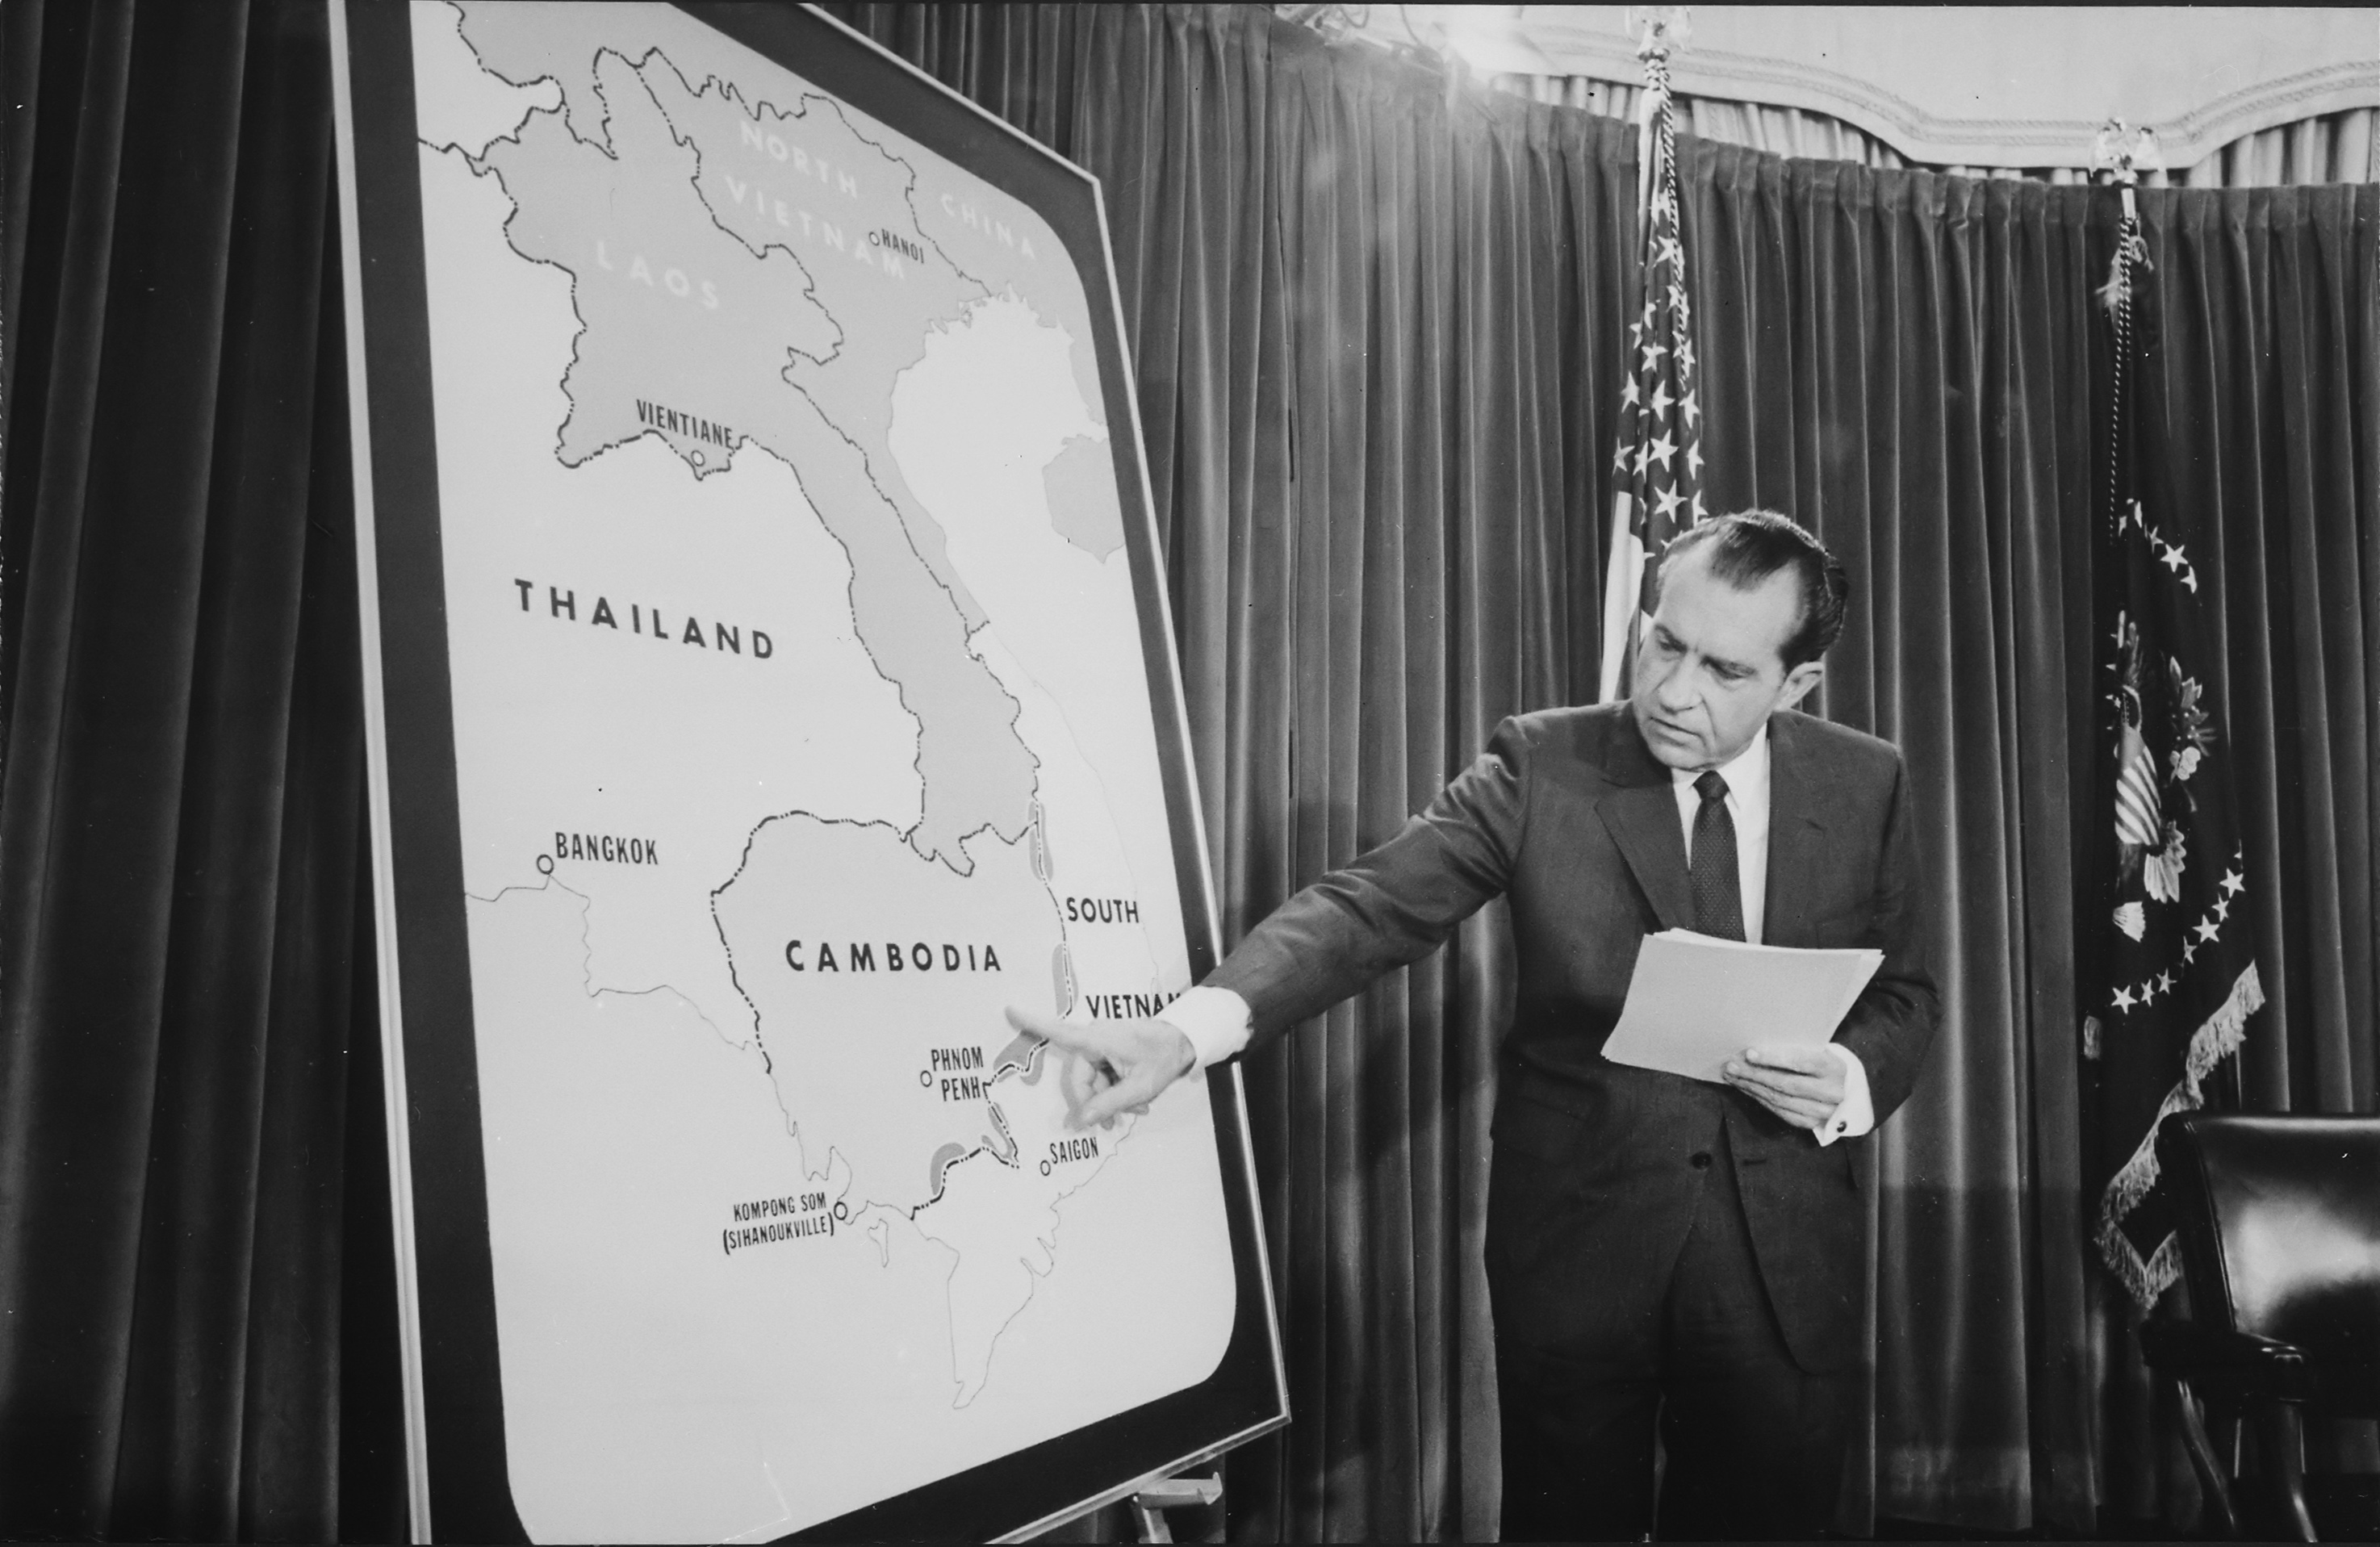 essay about u.s. involvement in vietnam war An essay or paper on us involvement in the vietnam war this research paper discusses and analyzes the reasons why the united states became involved in the vietnam.